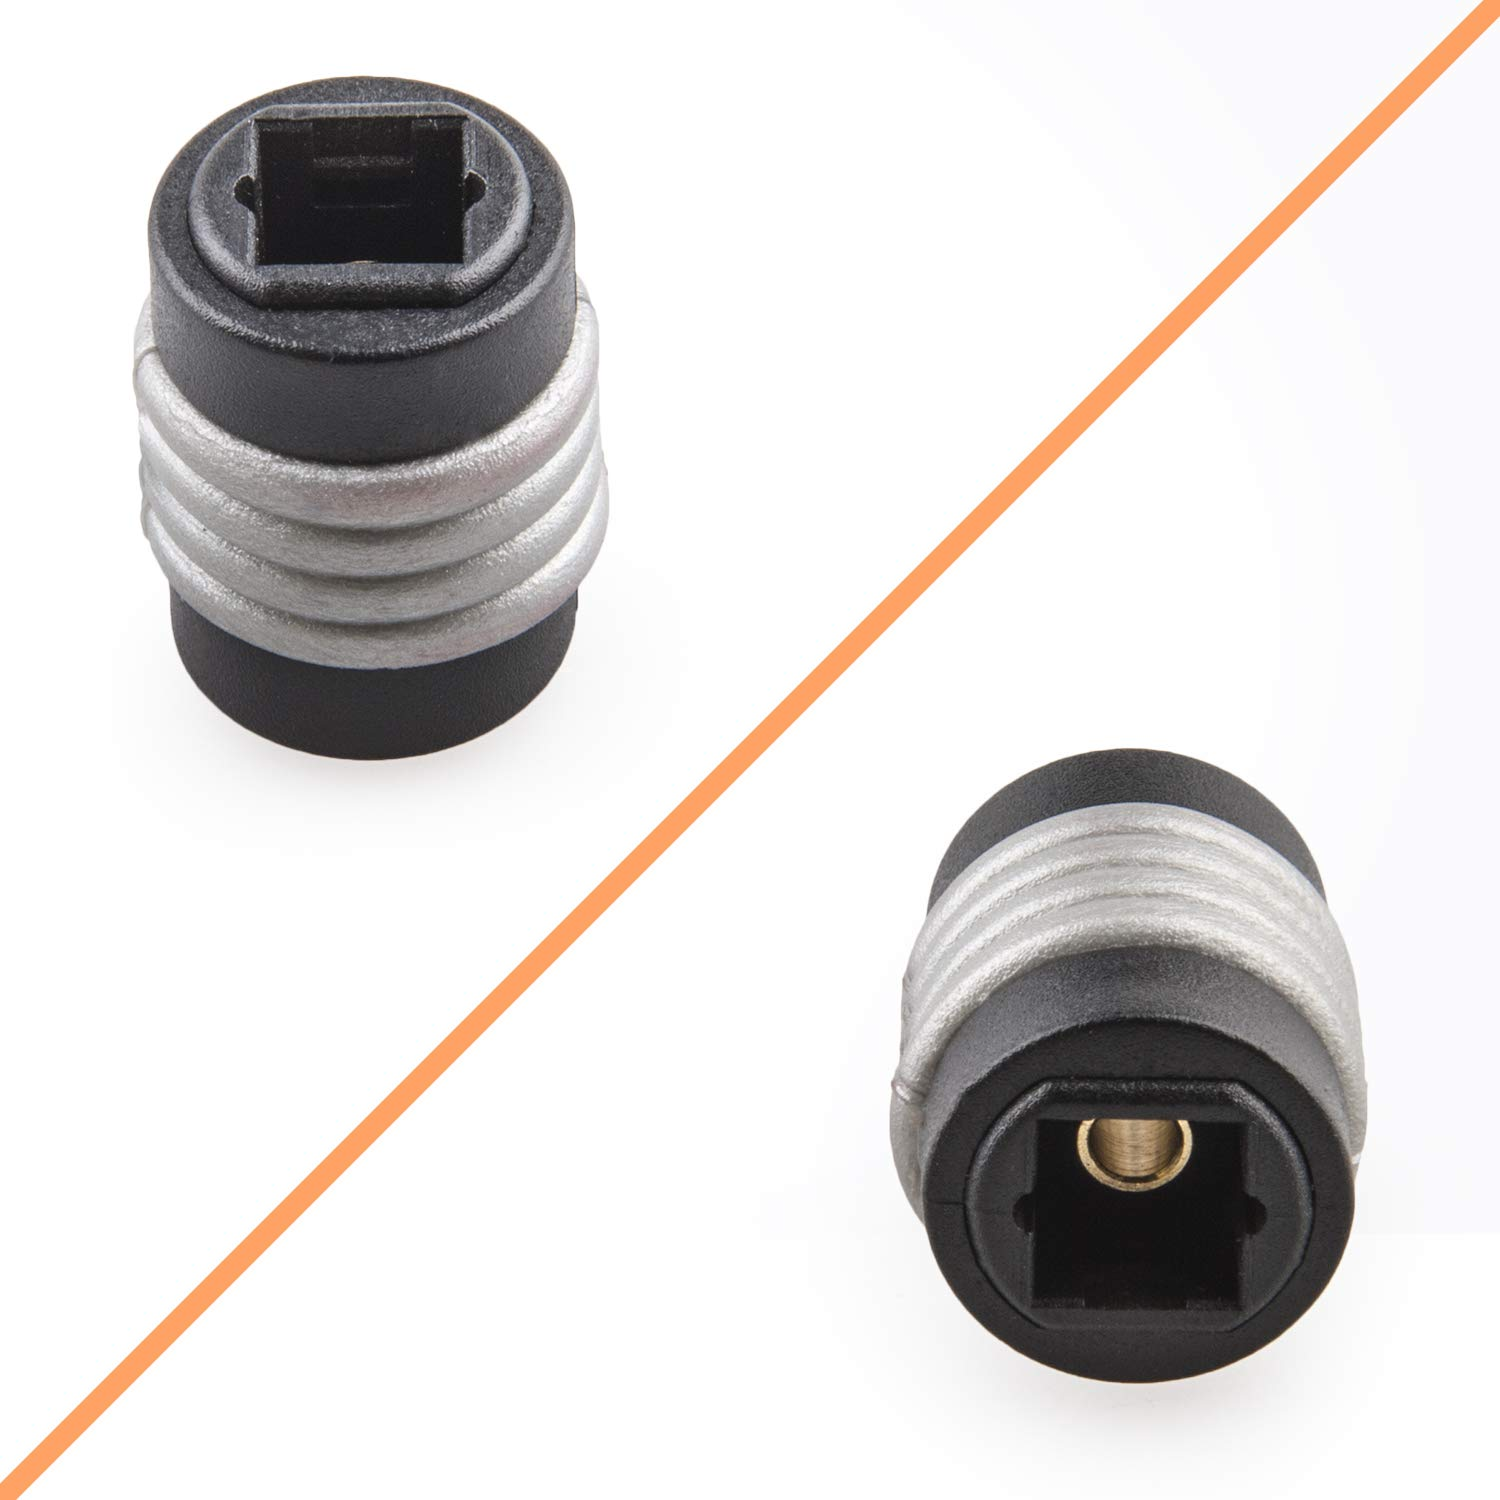 3 Feet-with Female to Female Audio Extension Cable Coupler Connector Adapter Digital Optical Extension GTOTd Digital Optical Audio Toslink Sound Bar TV Cable